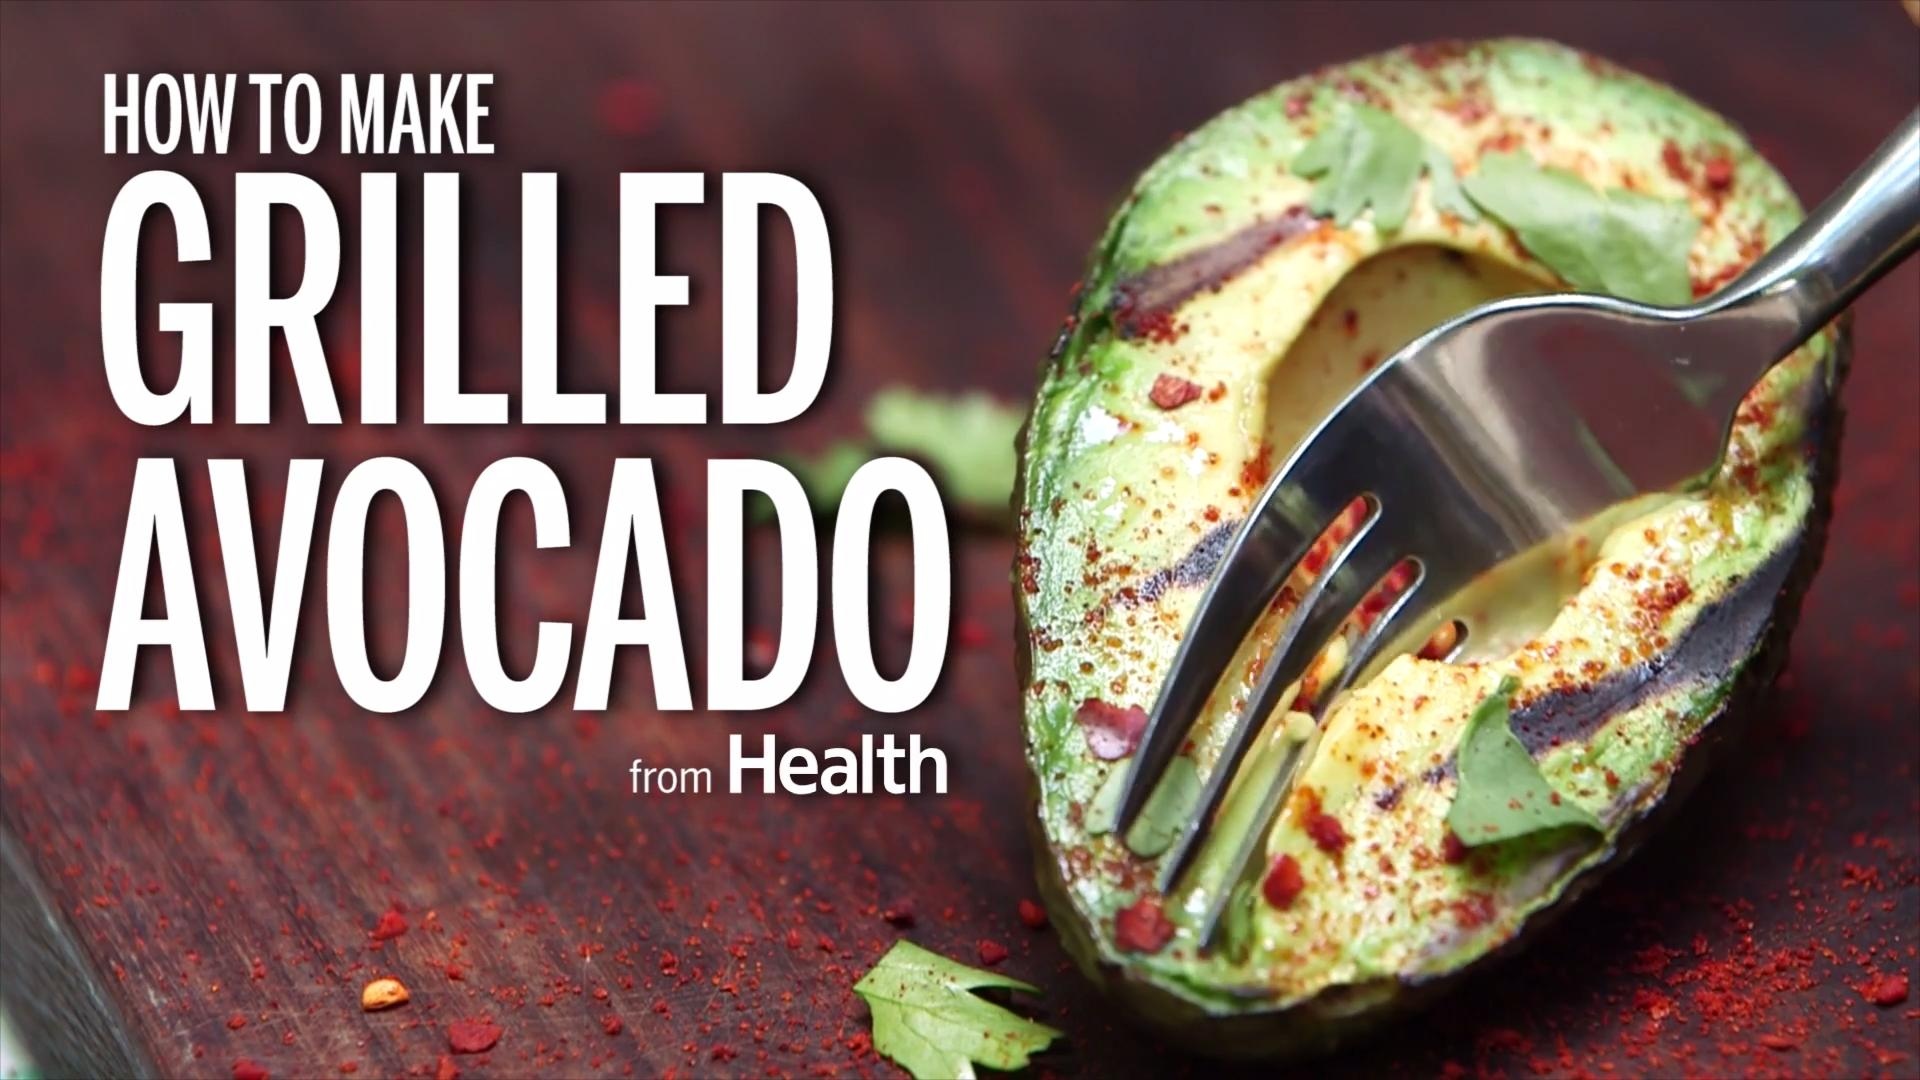 How to Make Grilled Avocado